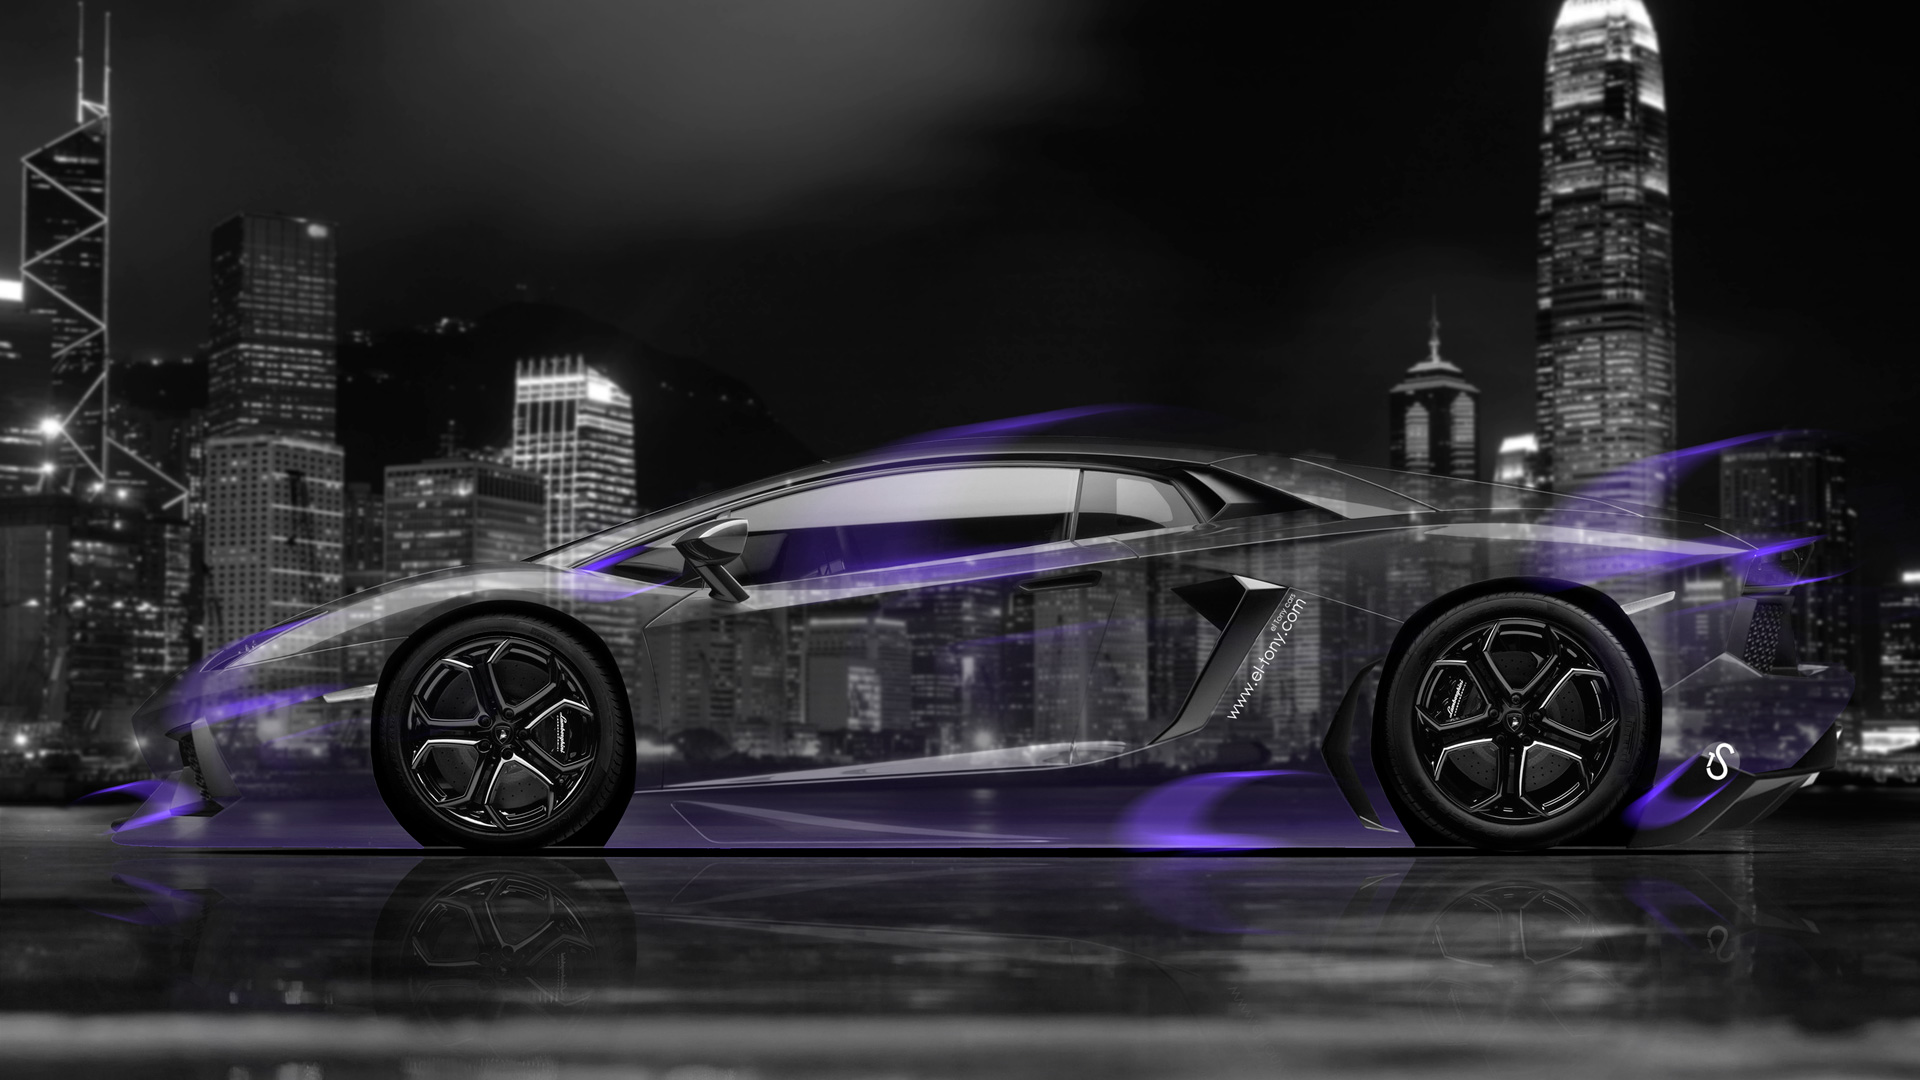 Wonderful Lamborghini Aventador Side Crystal City Car 2014 Art